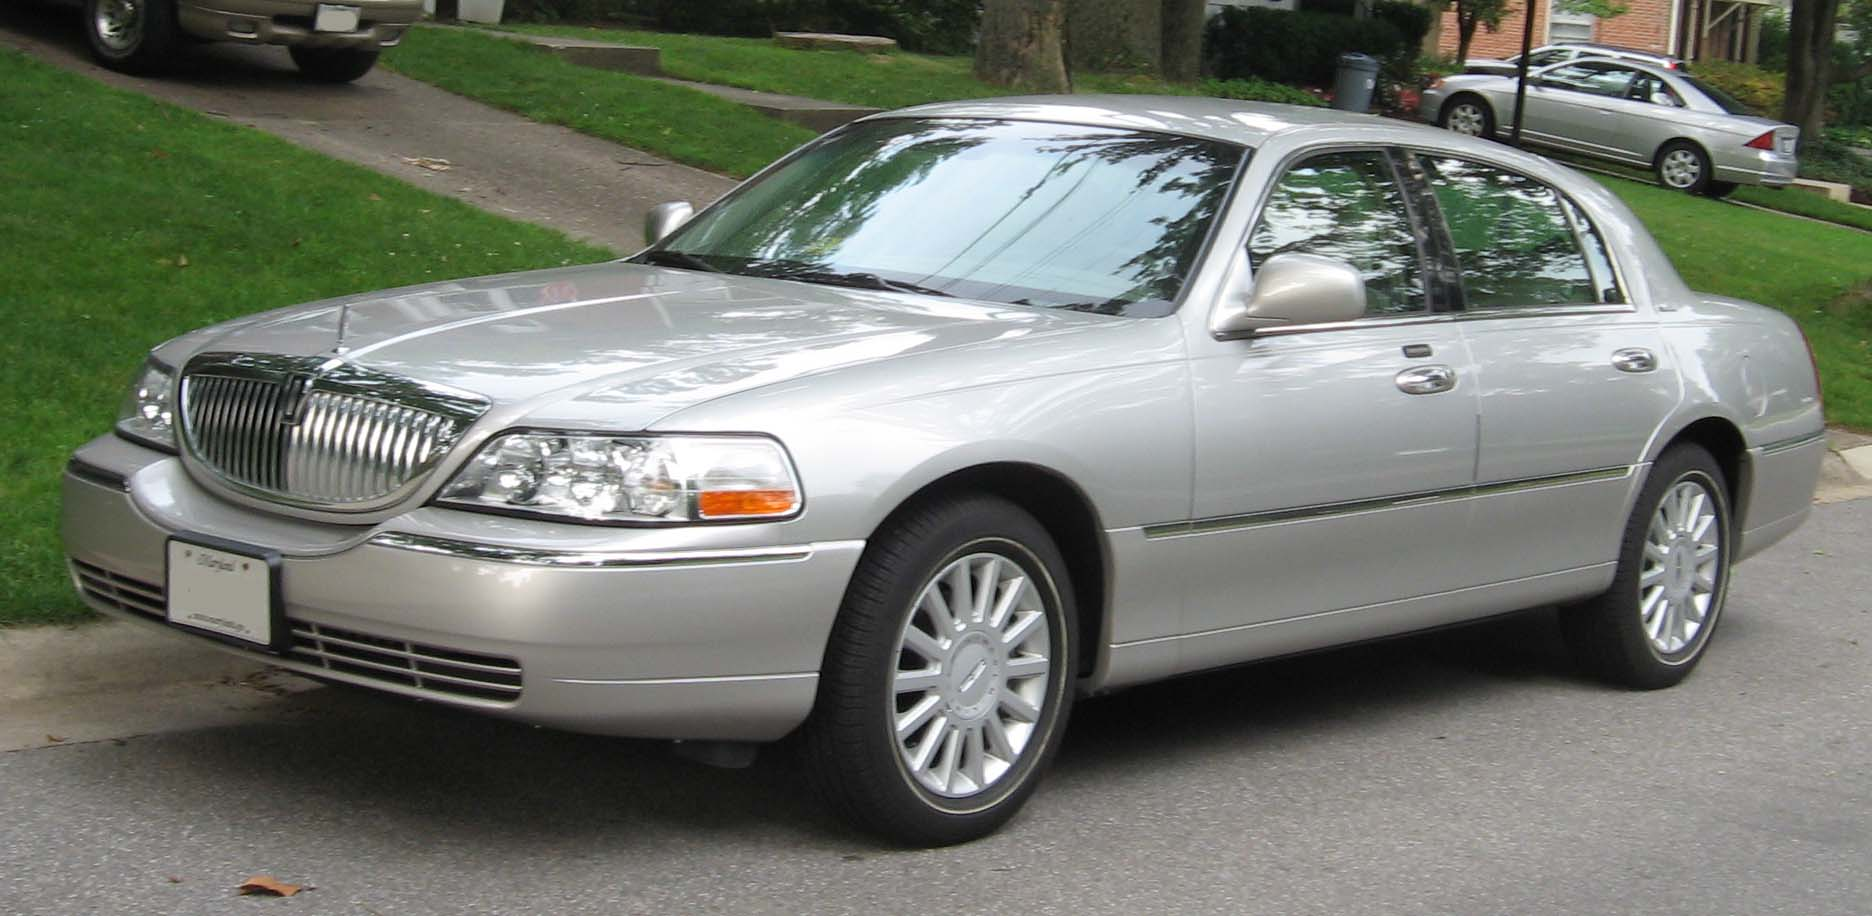 2003 lincoln town car information and photos momentcar. Black Bedroom Furniture Sets. Home Design Ideas